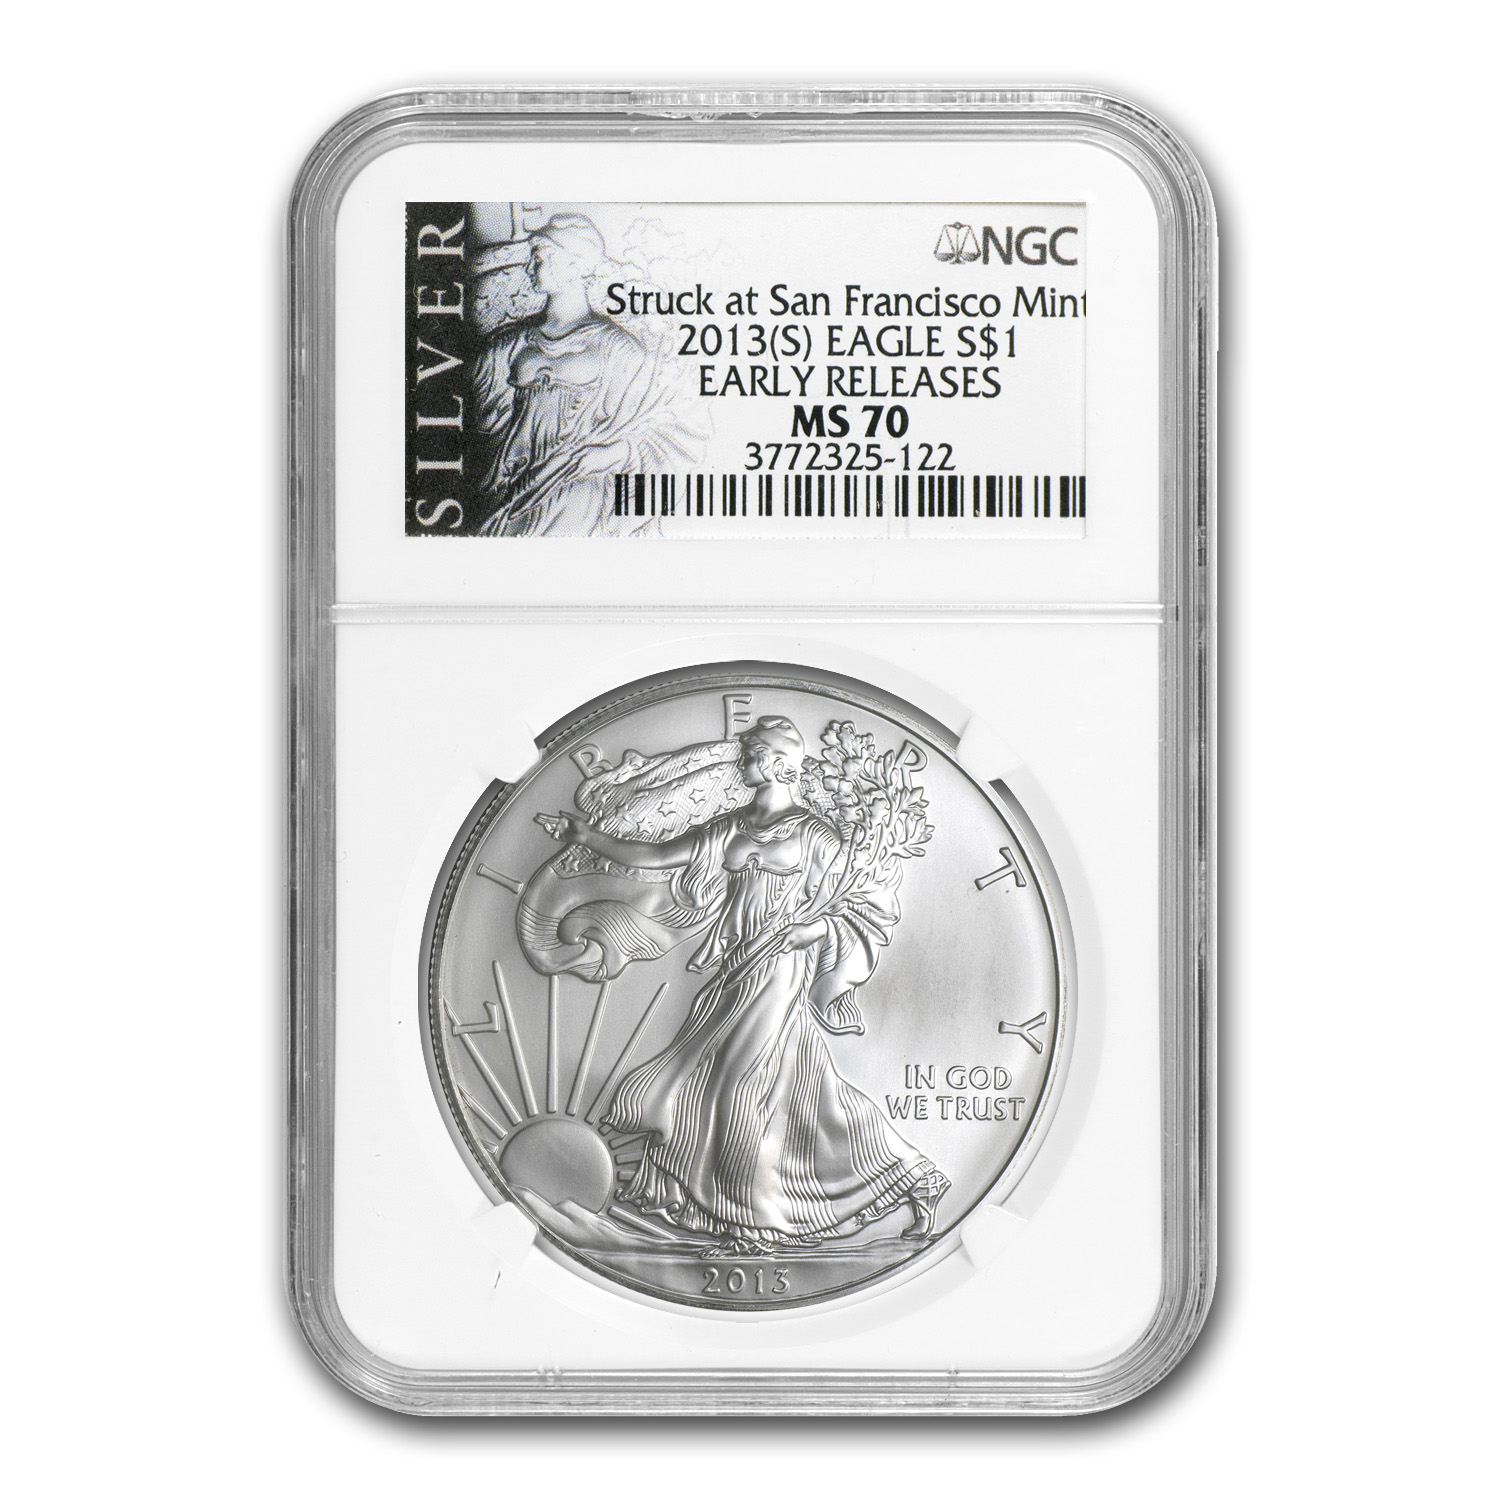 2013 (S) Silver American Eagle MS-70 NGC (ER, ALS Label)